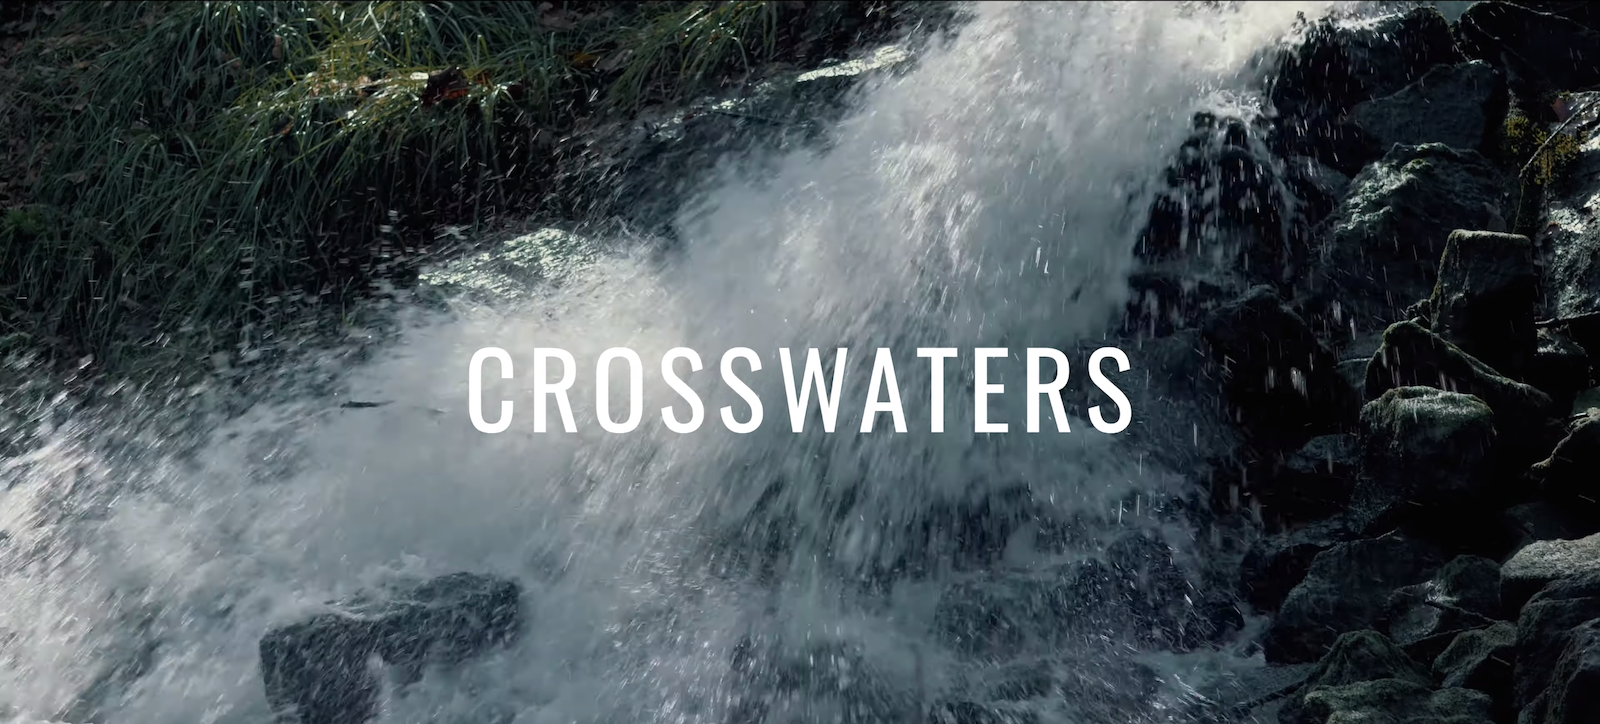 "Image of rushing water over a short water fall. The words ""CROSSWATERS"" is centered on the image in white."